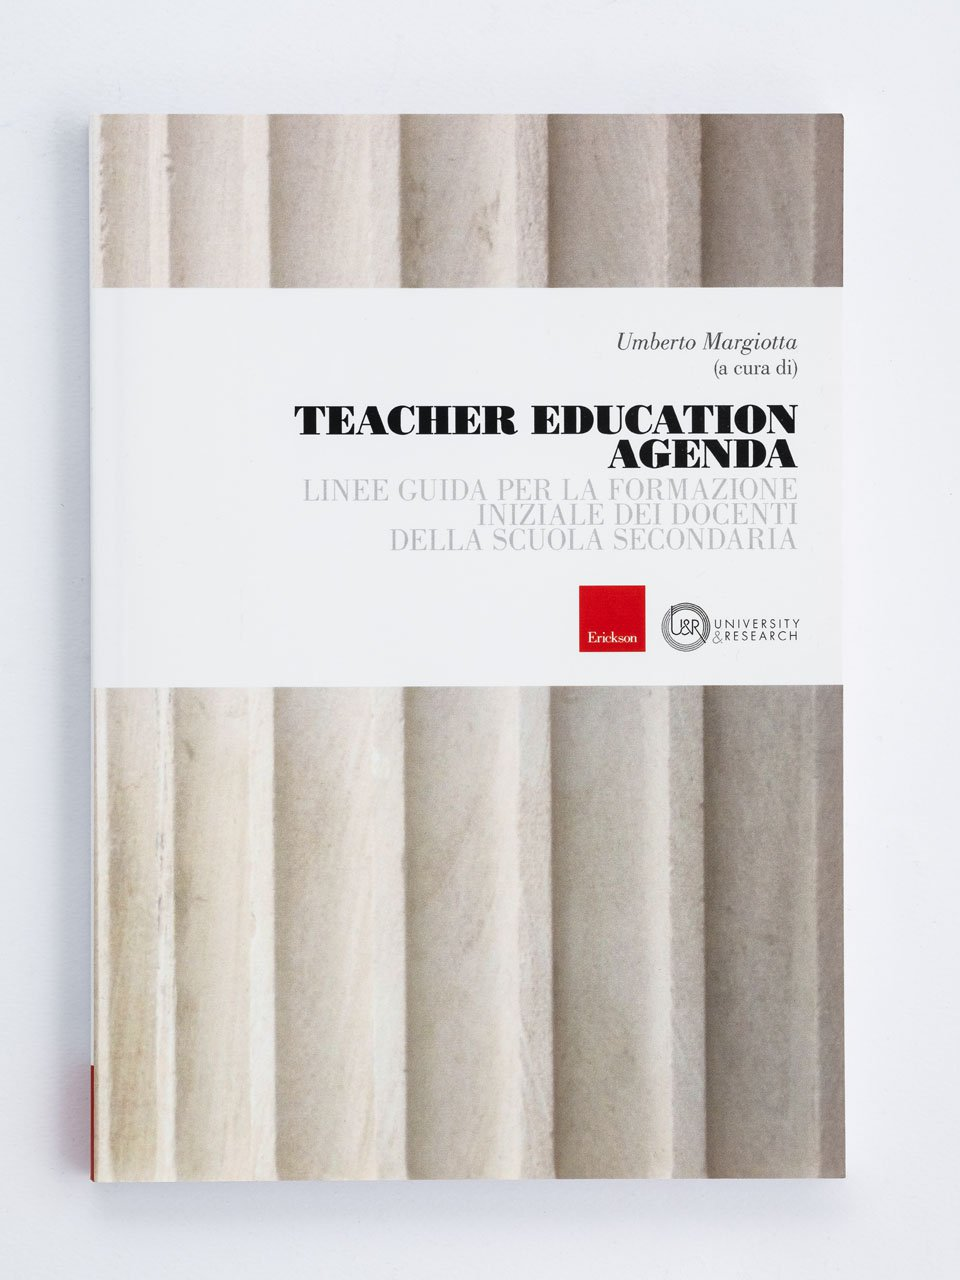 Teacher Education Agenda - Educare liberi da stereotipi - Formazione - Erickson